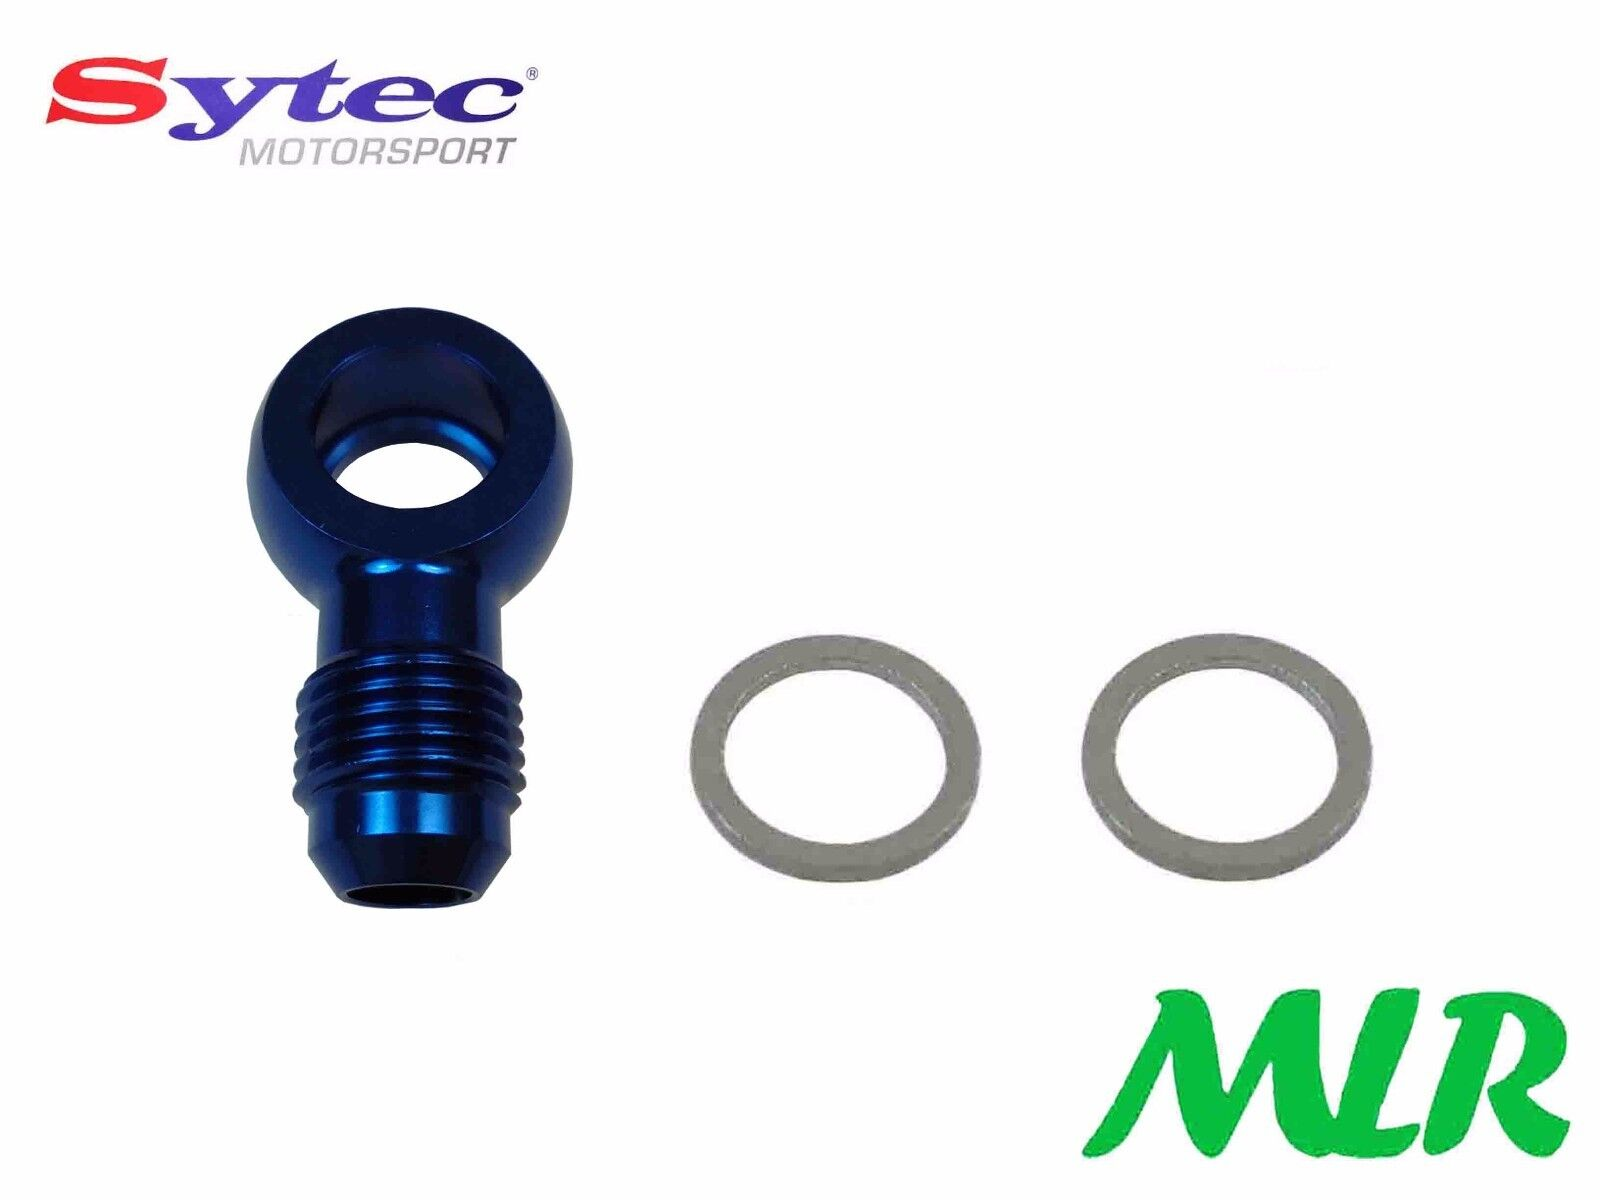 SYTEC ALLOY FUEL BANJO UNION 12MM 6JIC BLUE INJECTION CARBURETTOR MLR.AYX